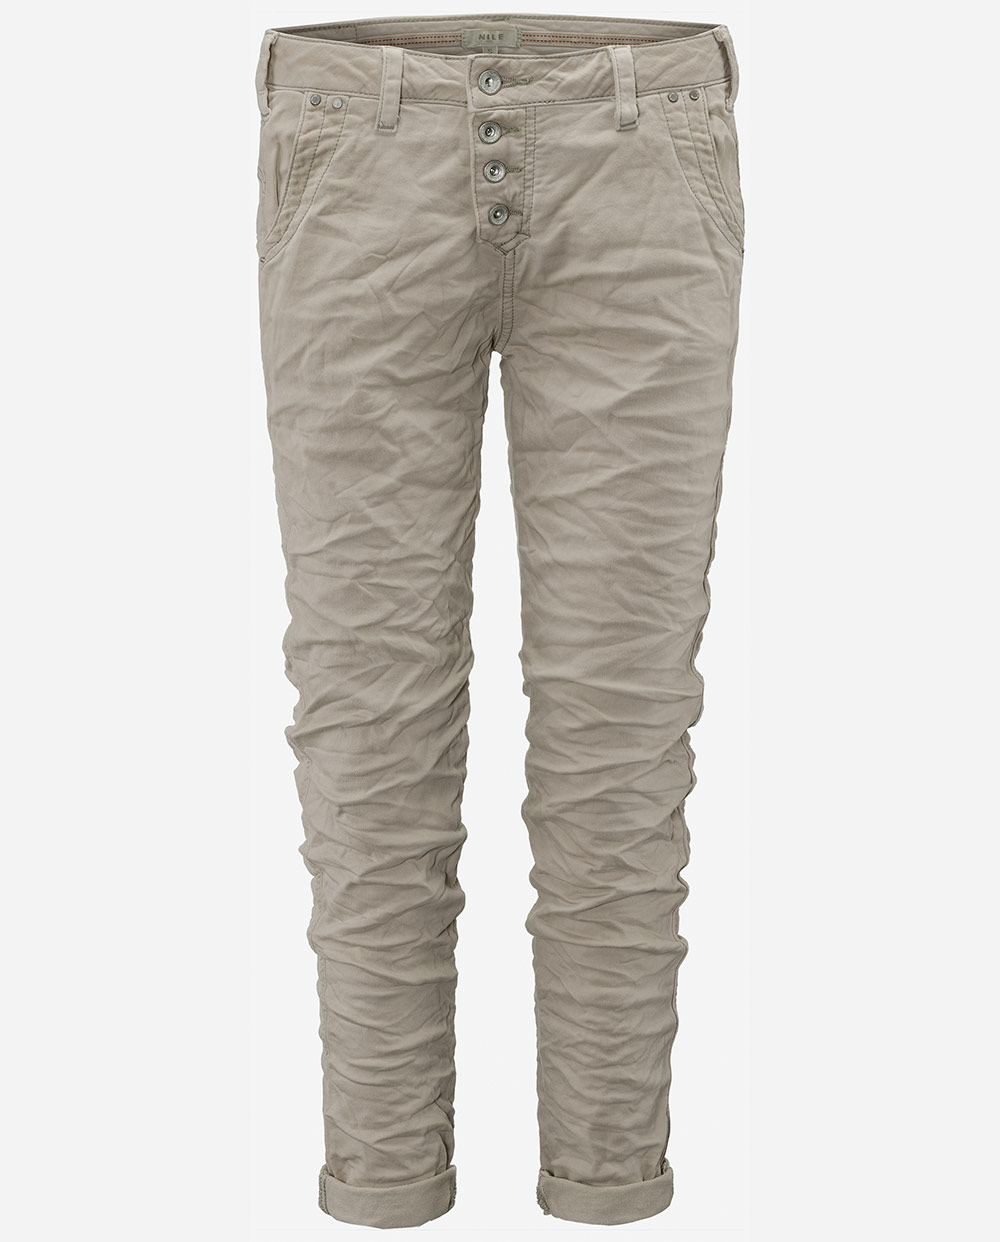 Nile f14188 front sand